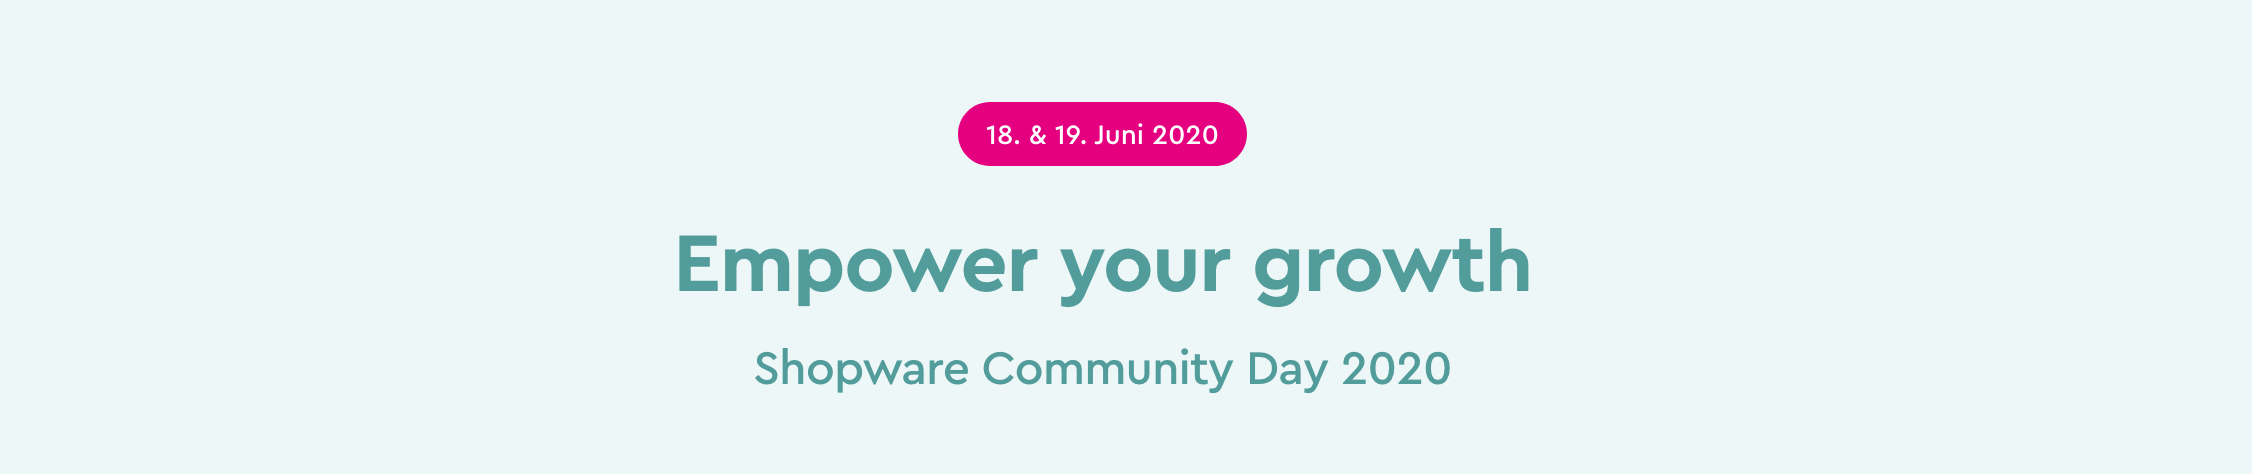 Shopware Community Day 2020 | Empower your growth